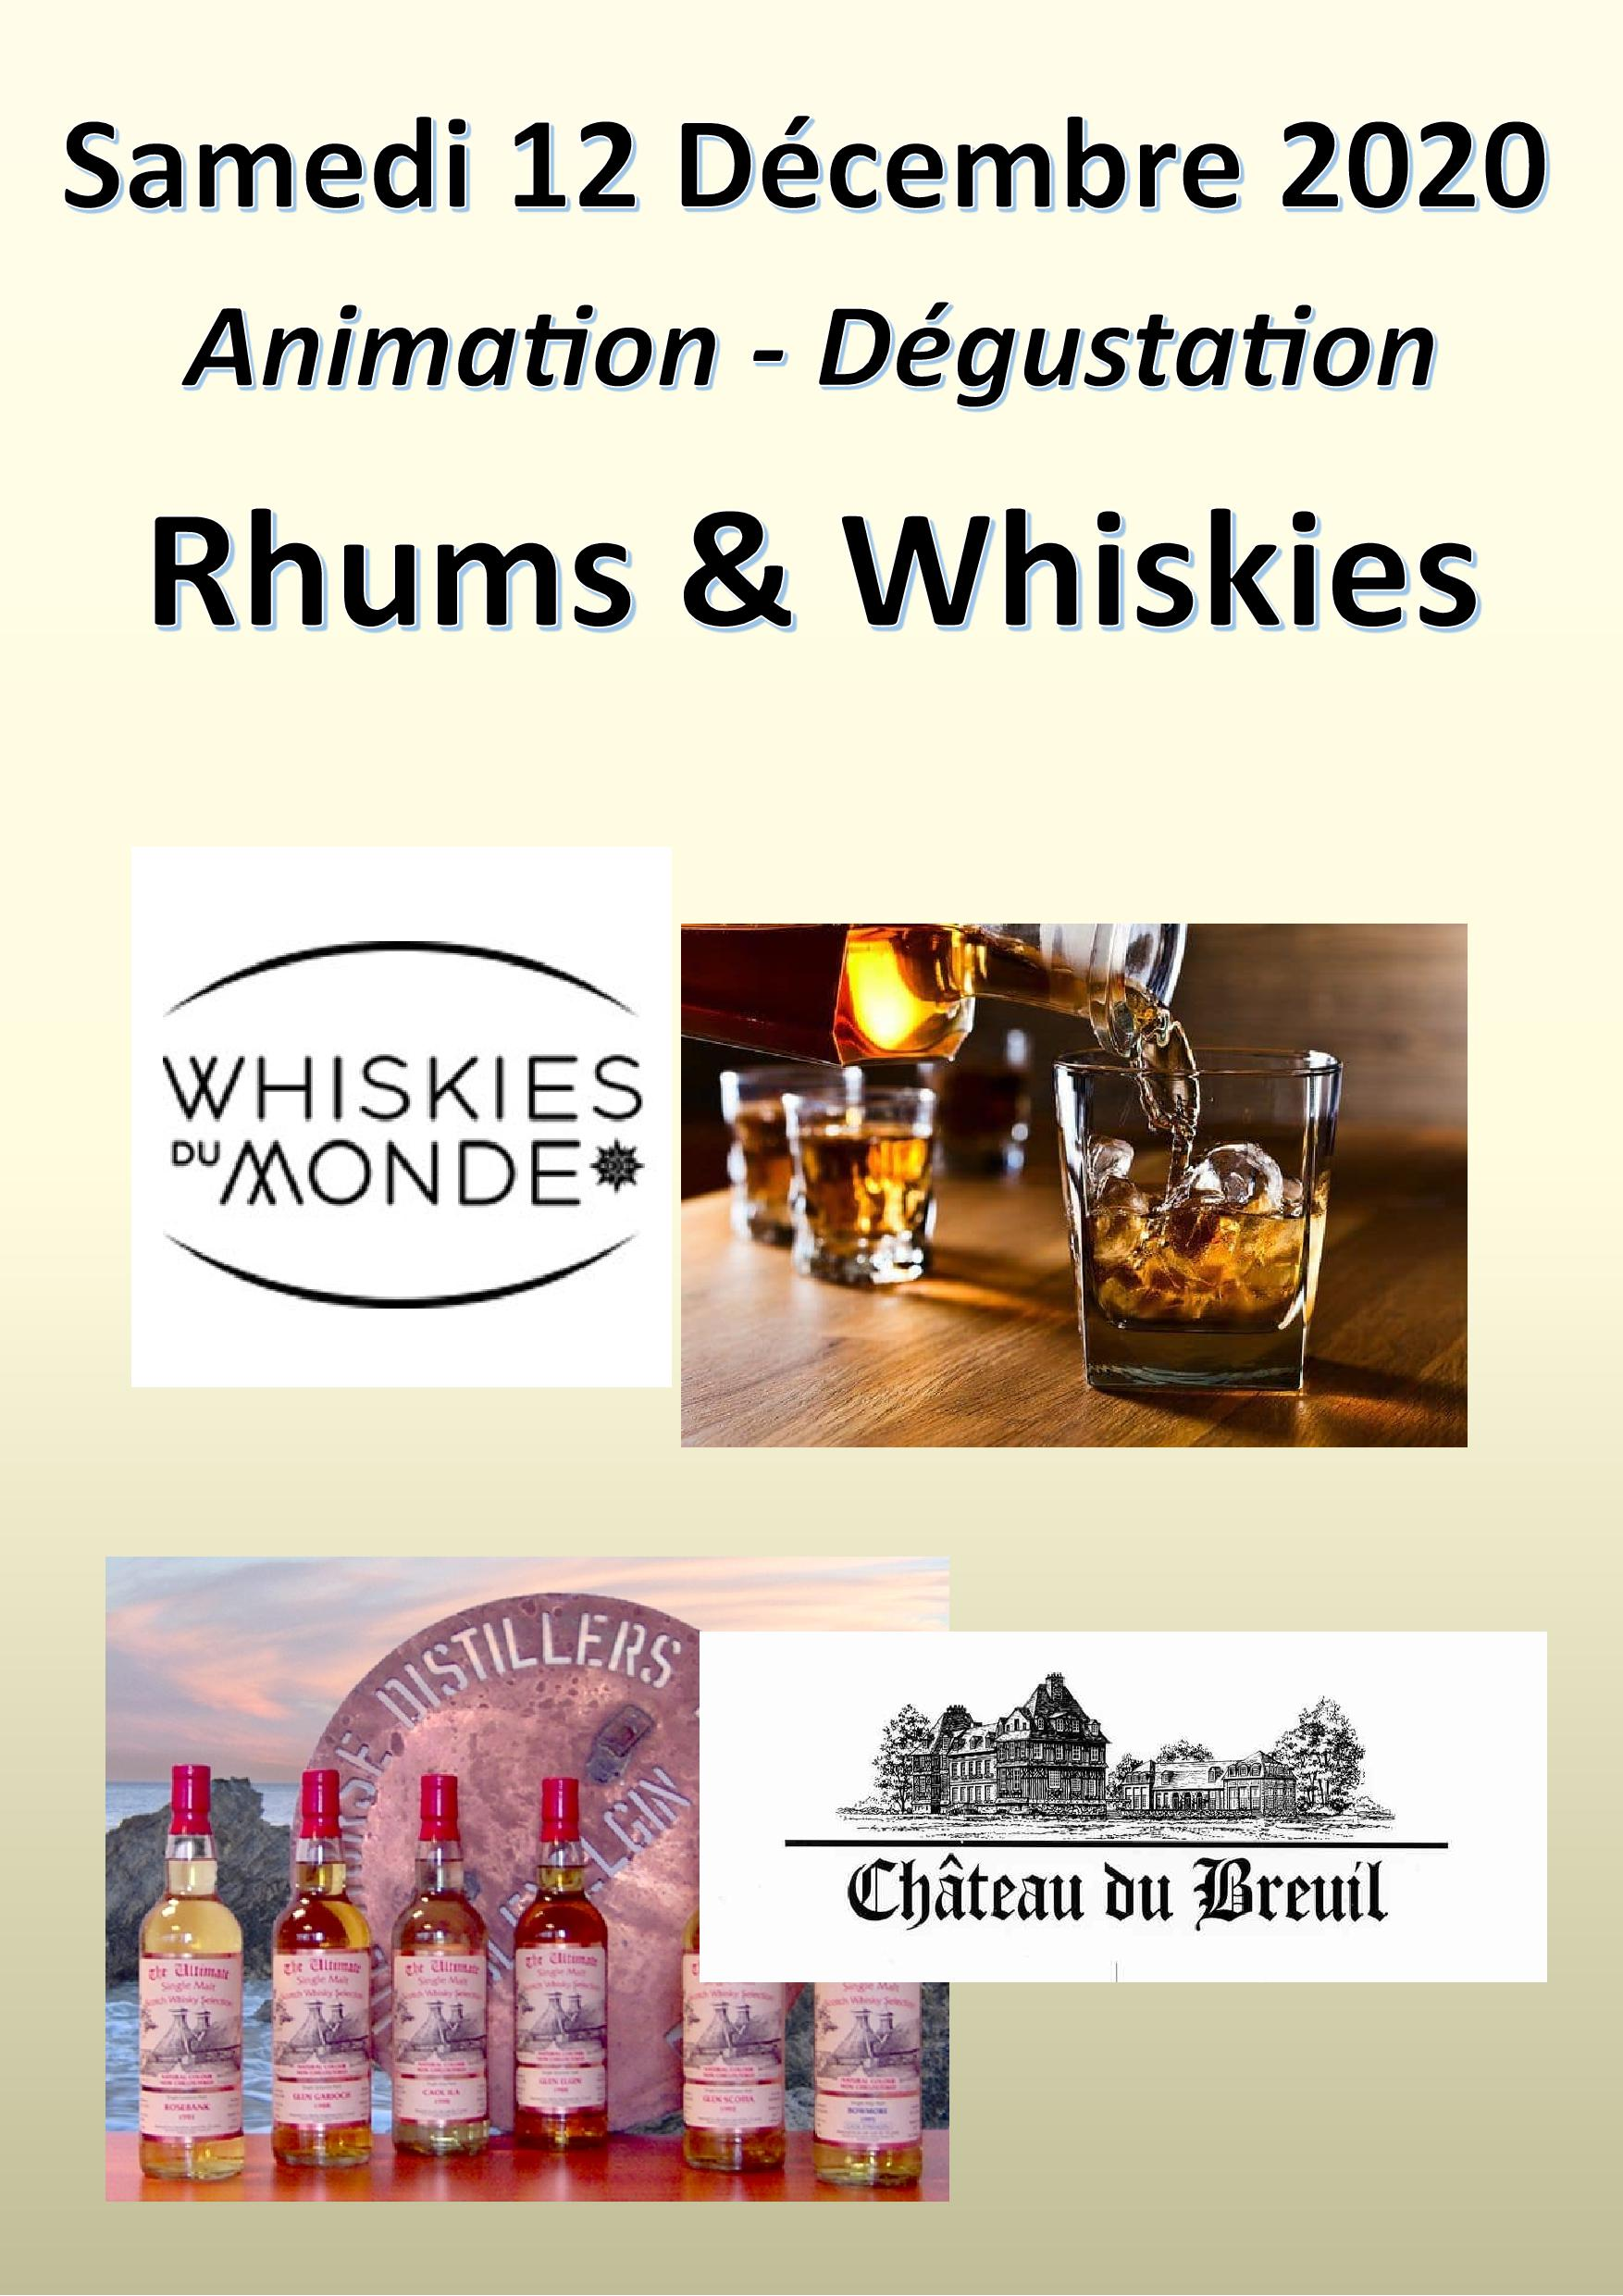 Animation Whiskies et Rhums